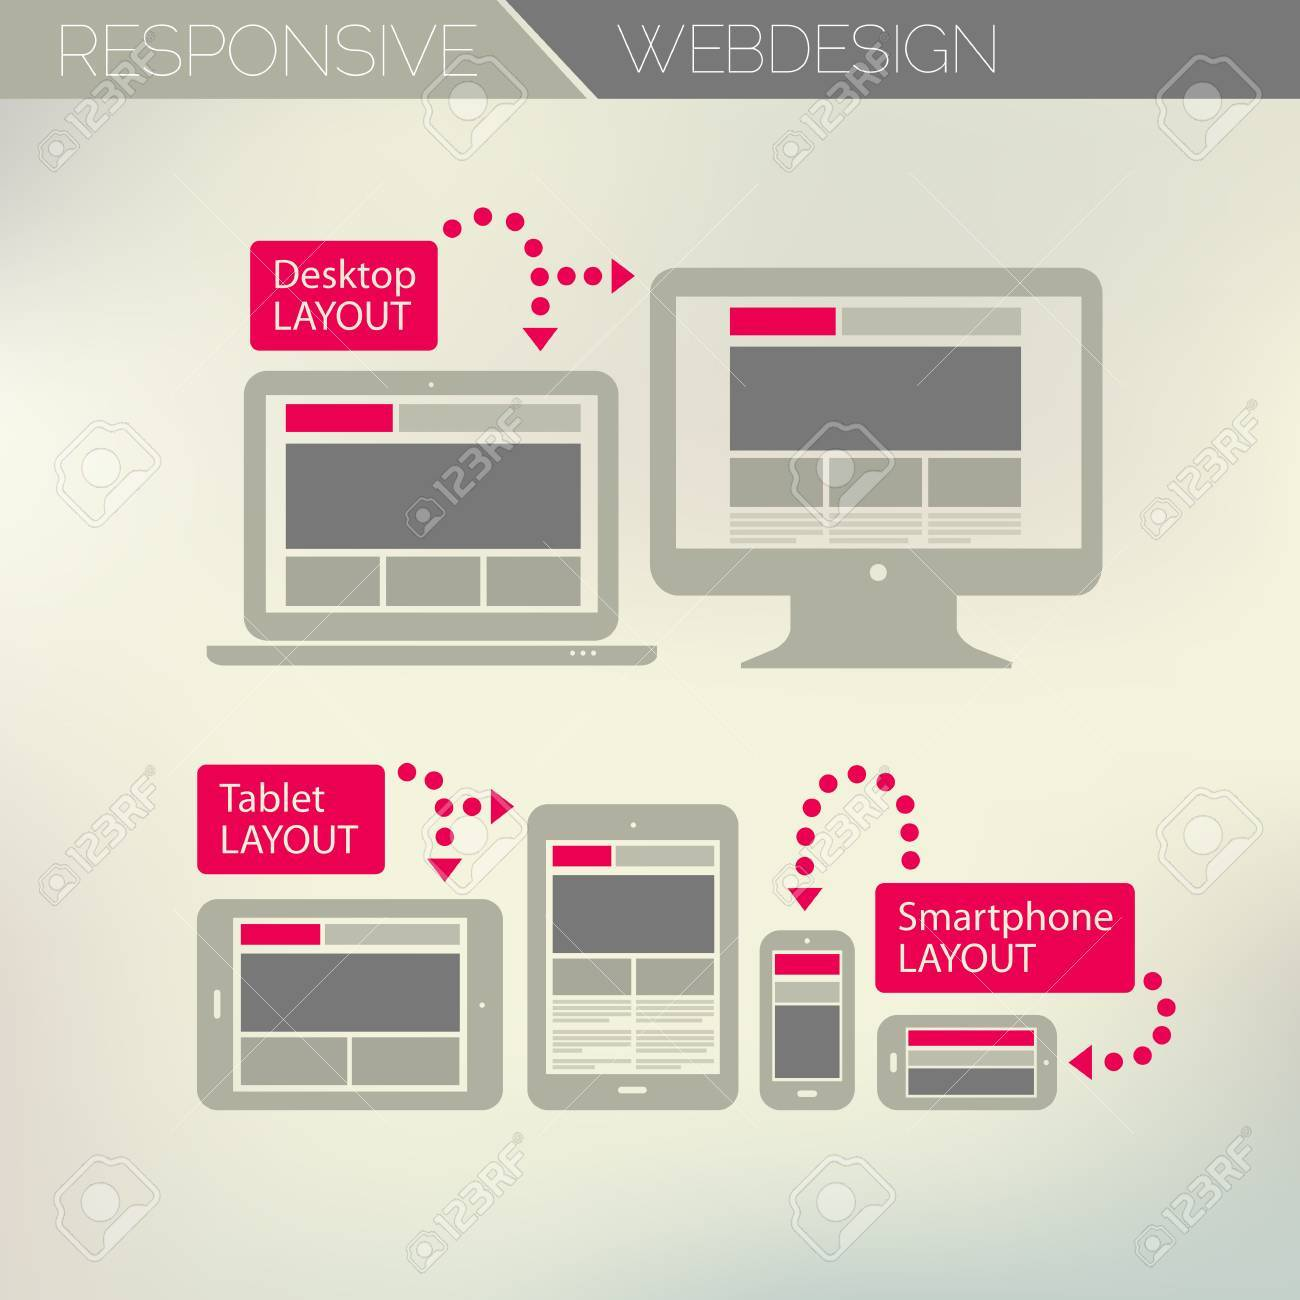 Responsive Webdesign Technology Page Design Template Concept Royalty